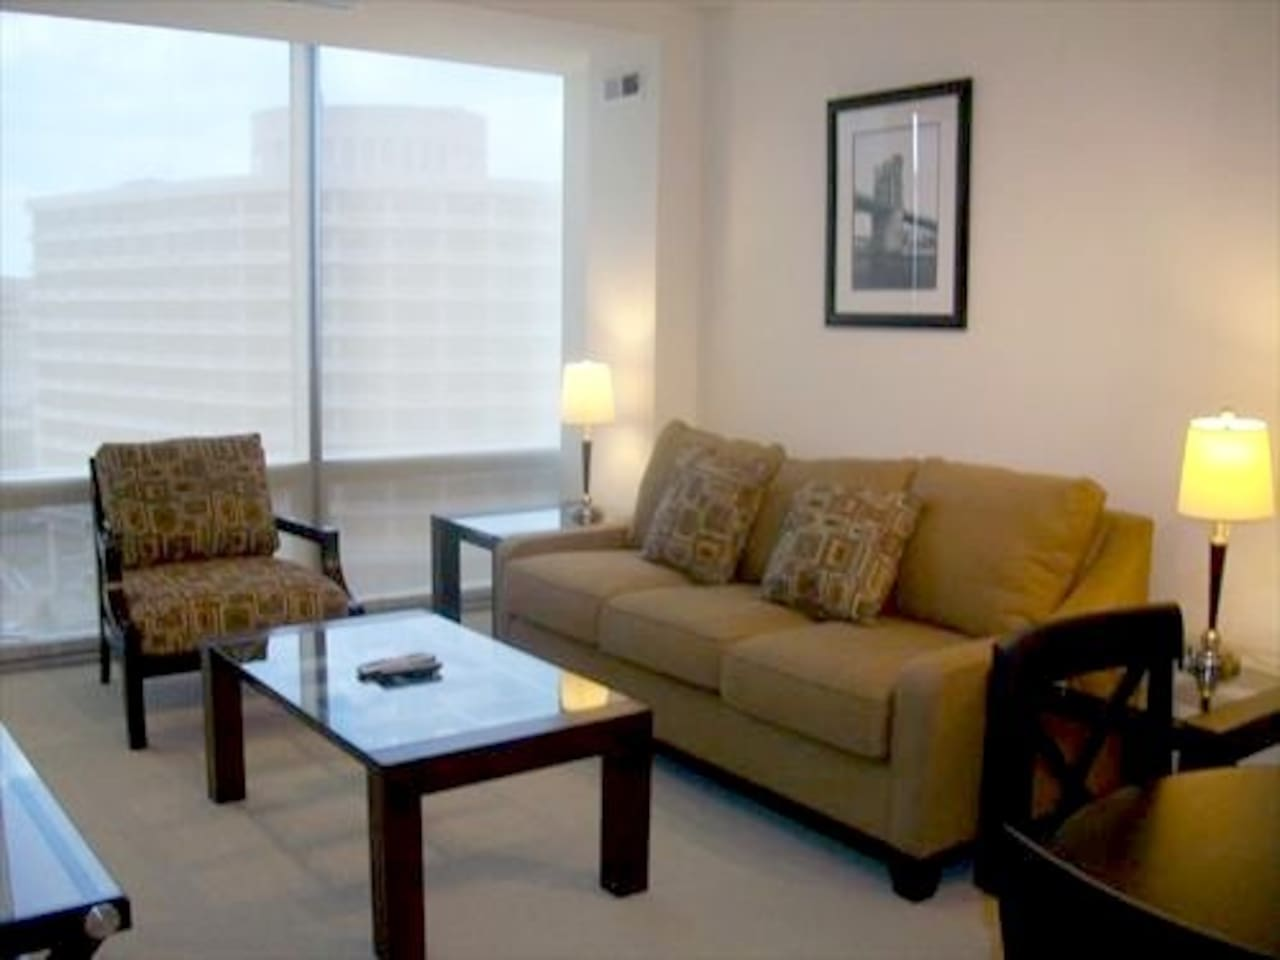 [1481-1]Luxury 1 BR in Crystal City